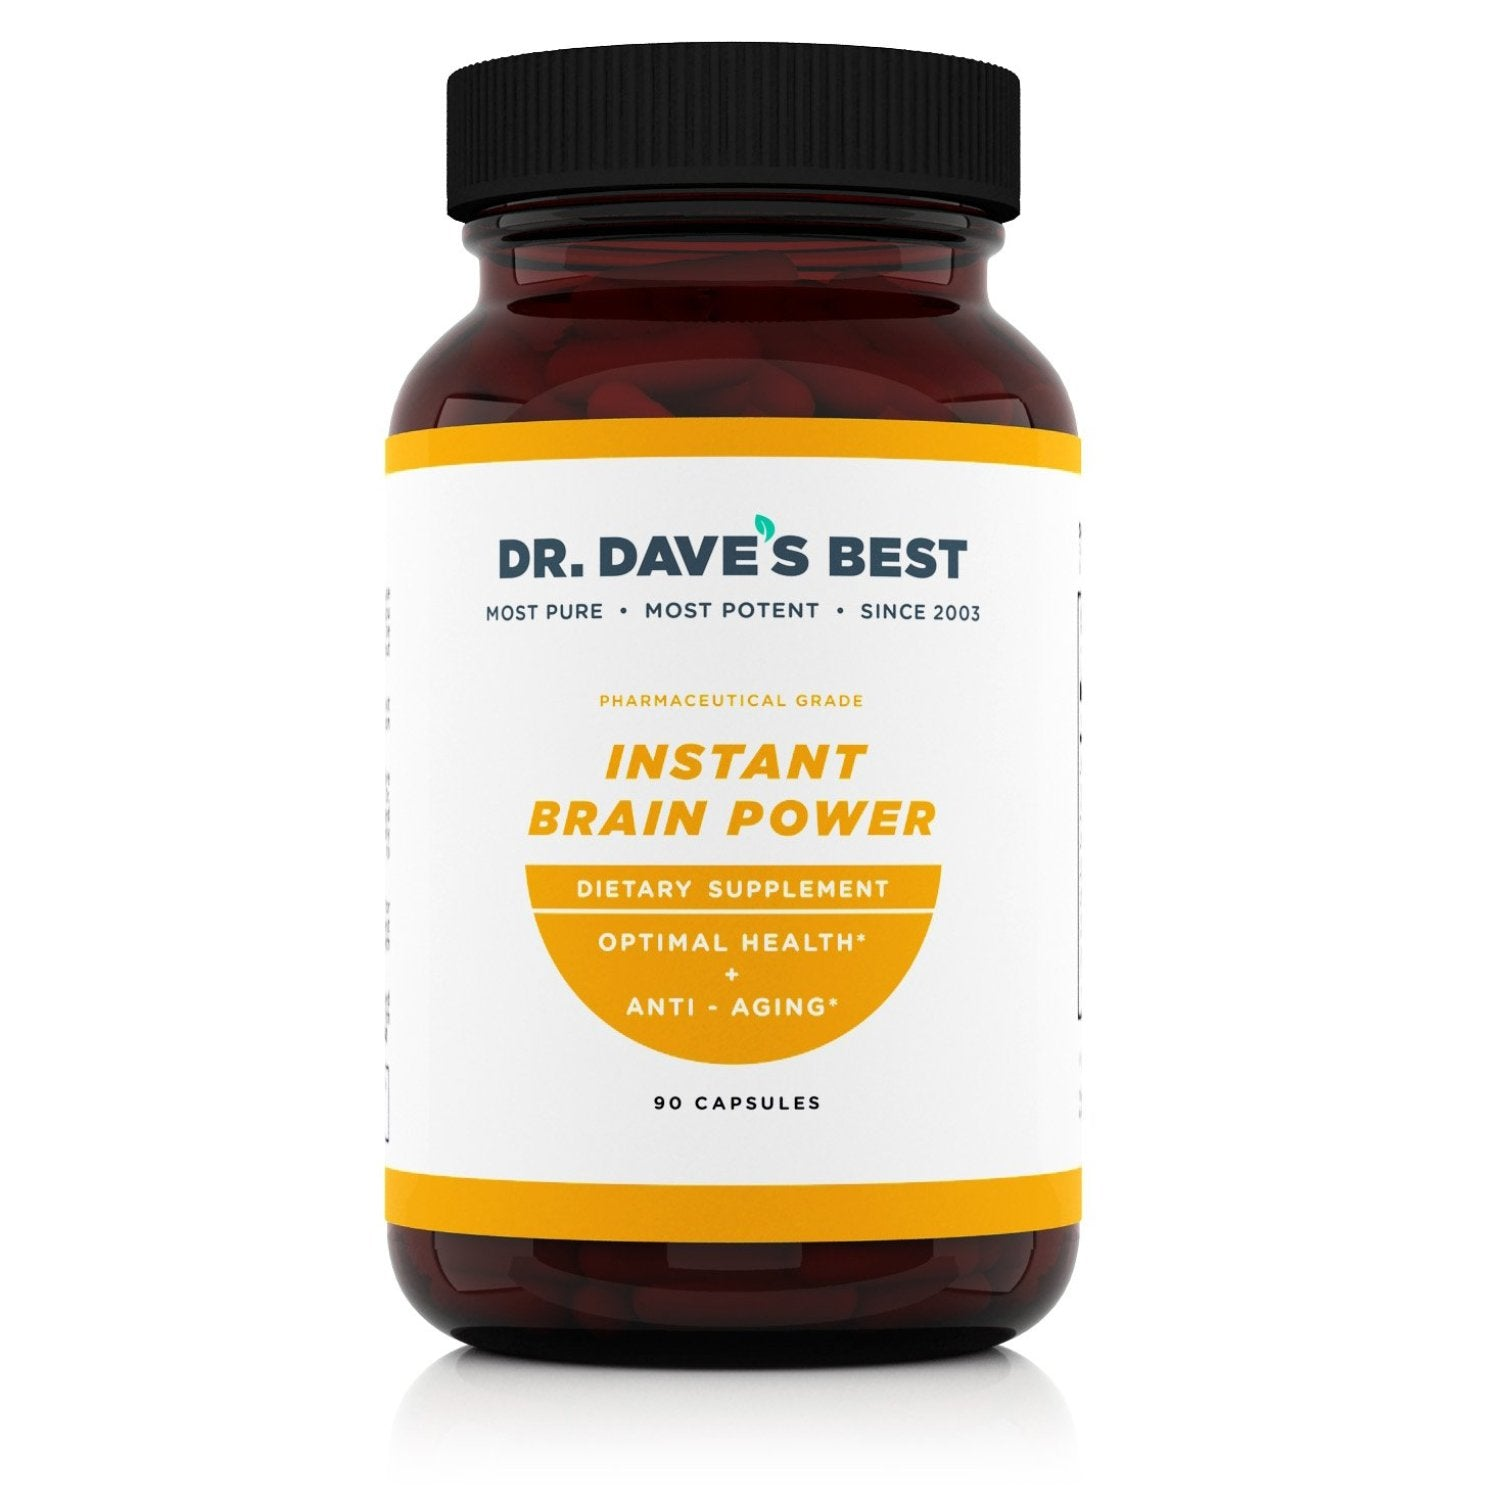 Dr. Dave's Best Instant Brain Power - DrDavesBest